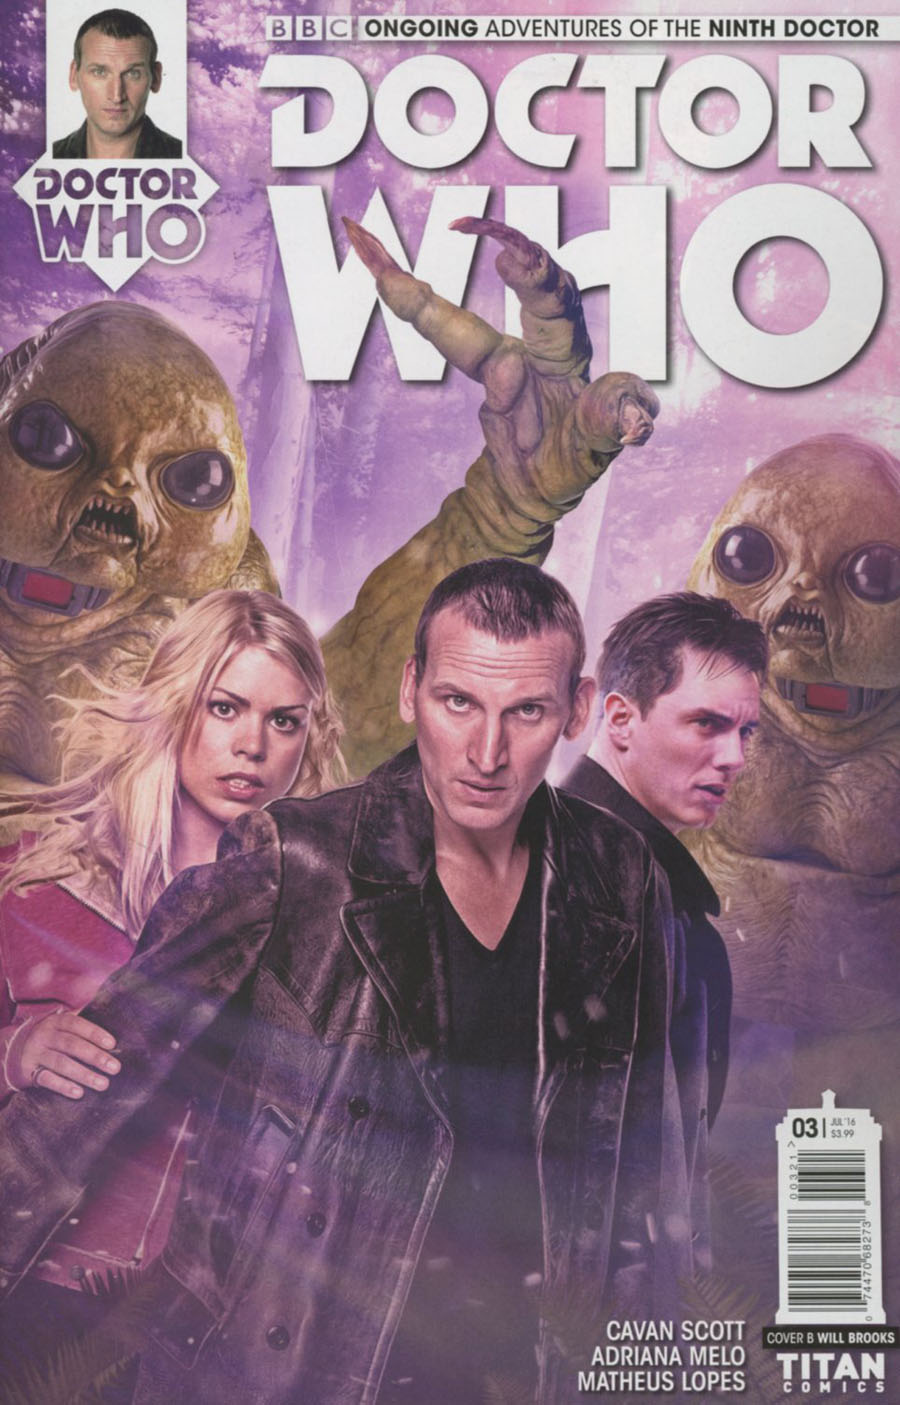 Doctor Who 9th Doctor Vol 2 #3 Cover B Variant Photo Cover